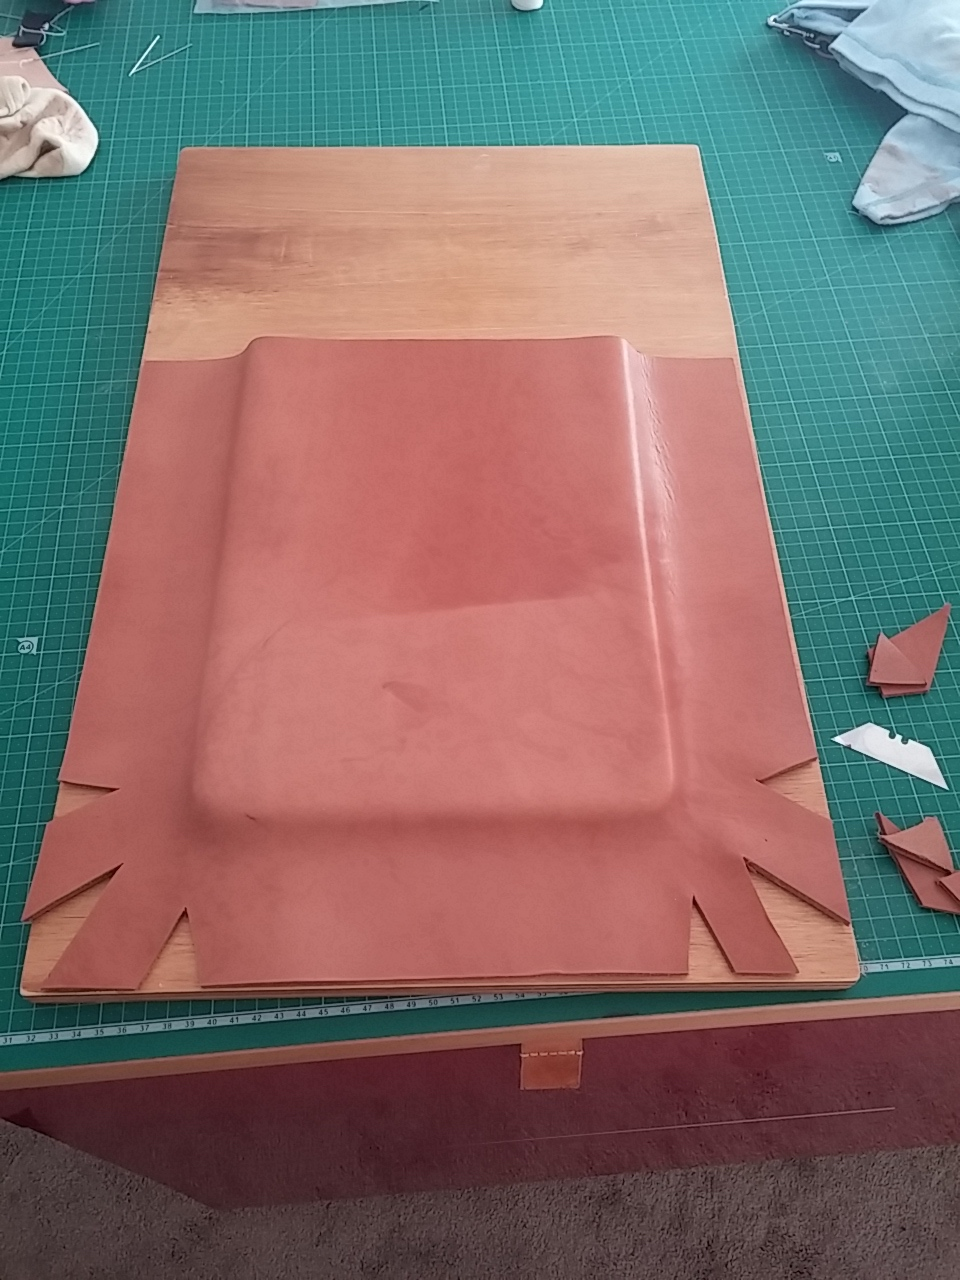 Moulding the leather with strategically placed 'V' cut